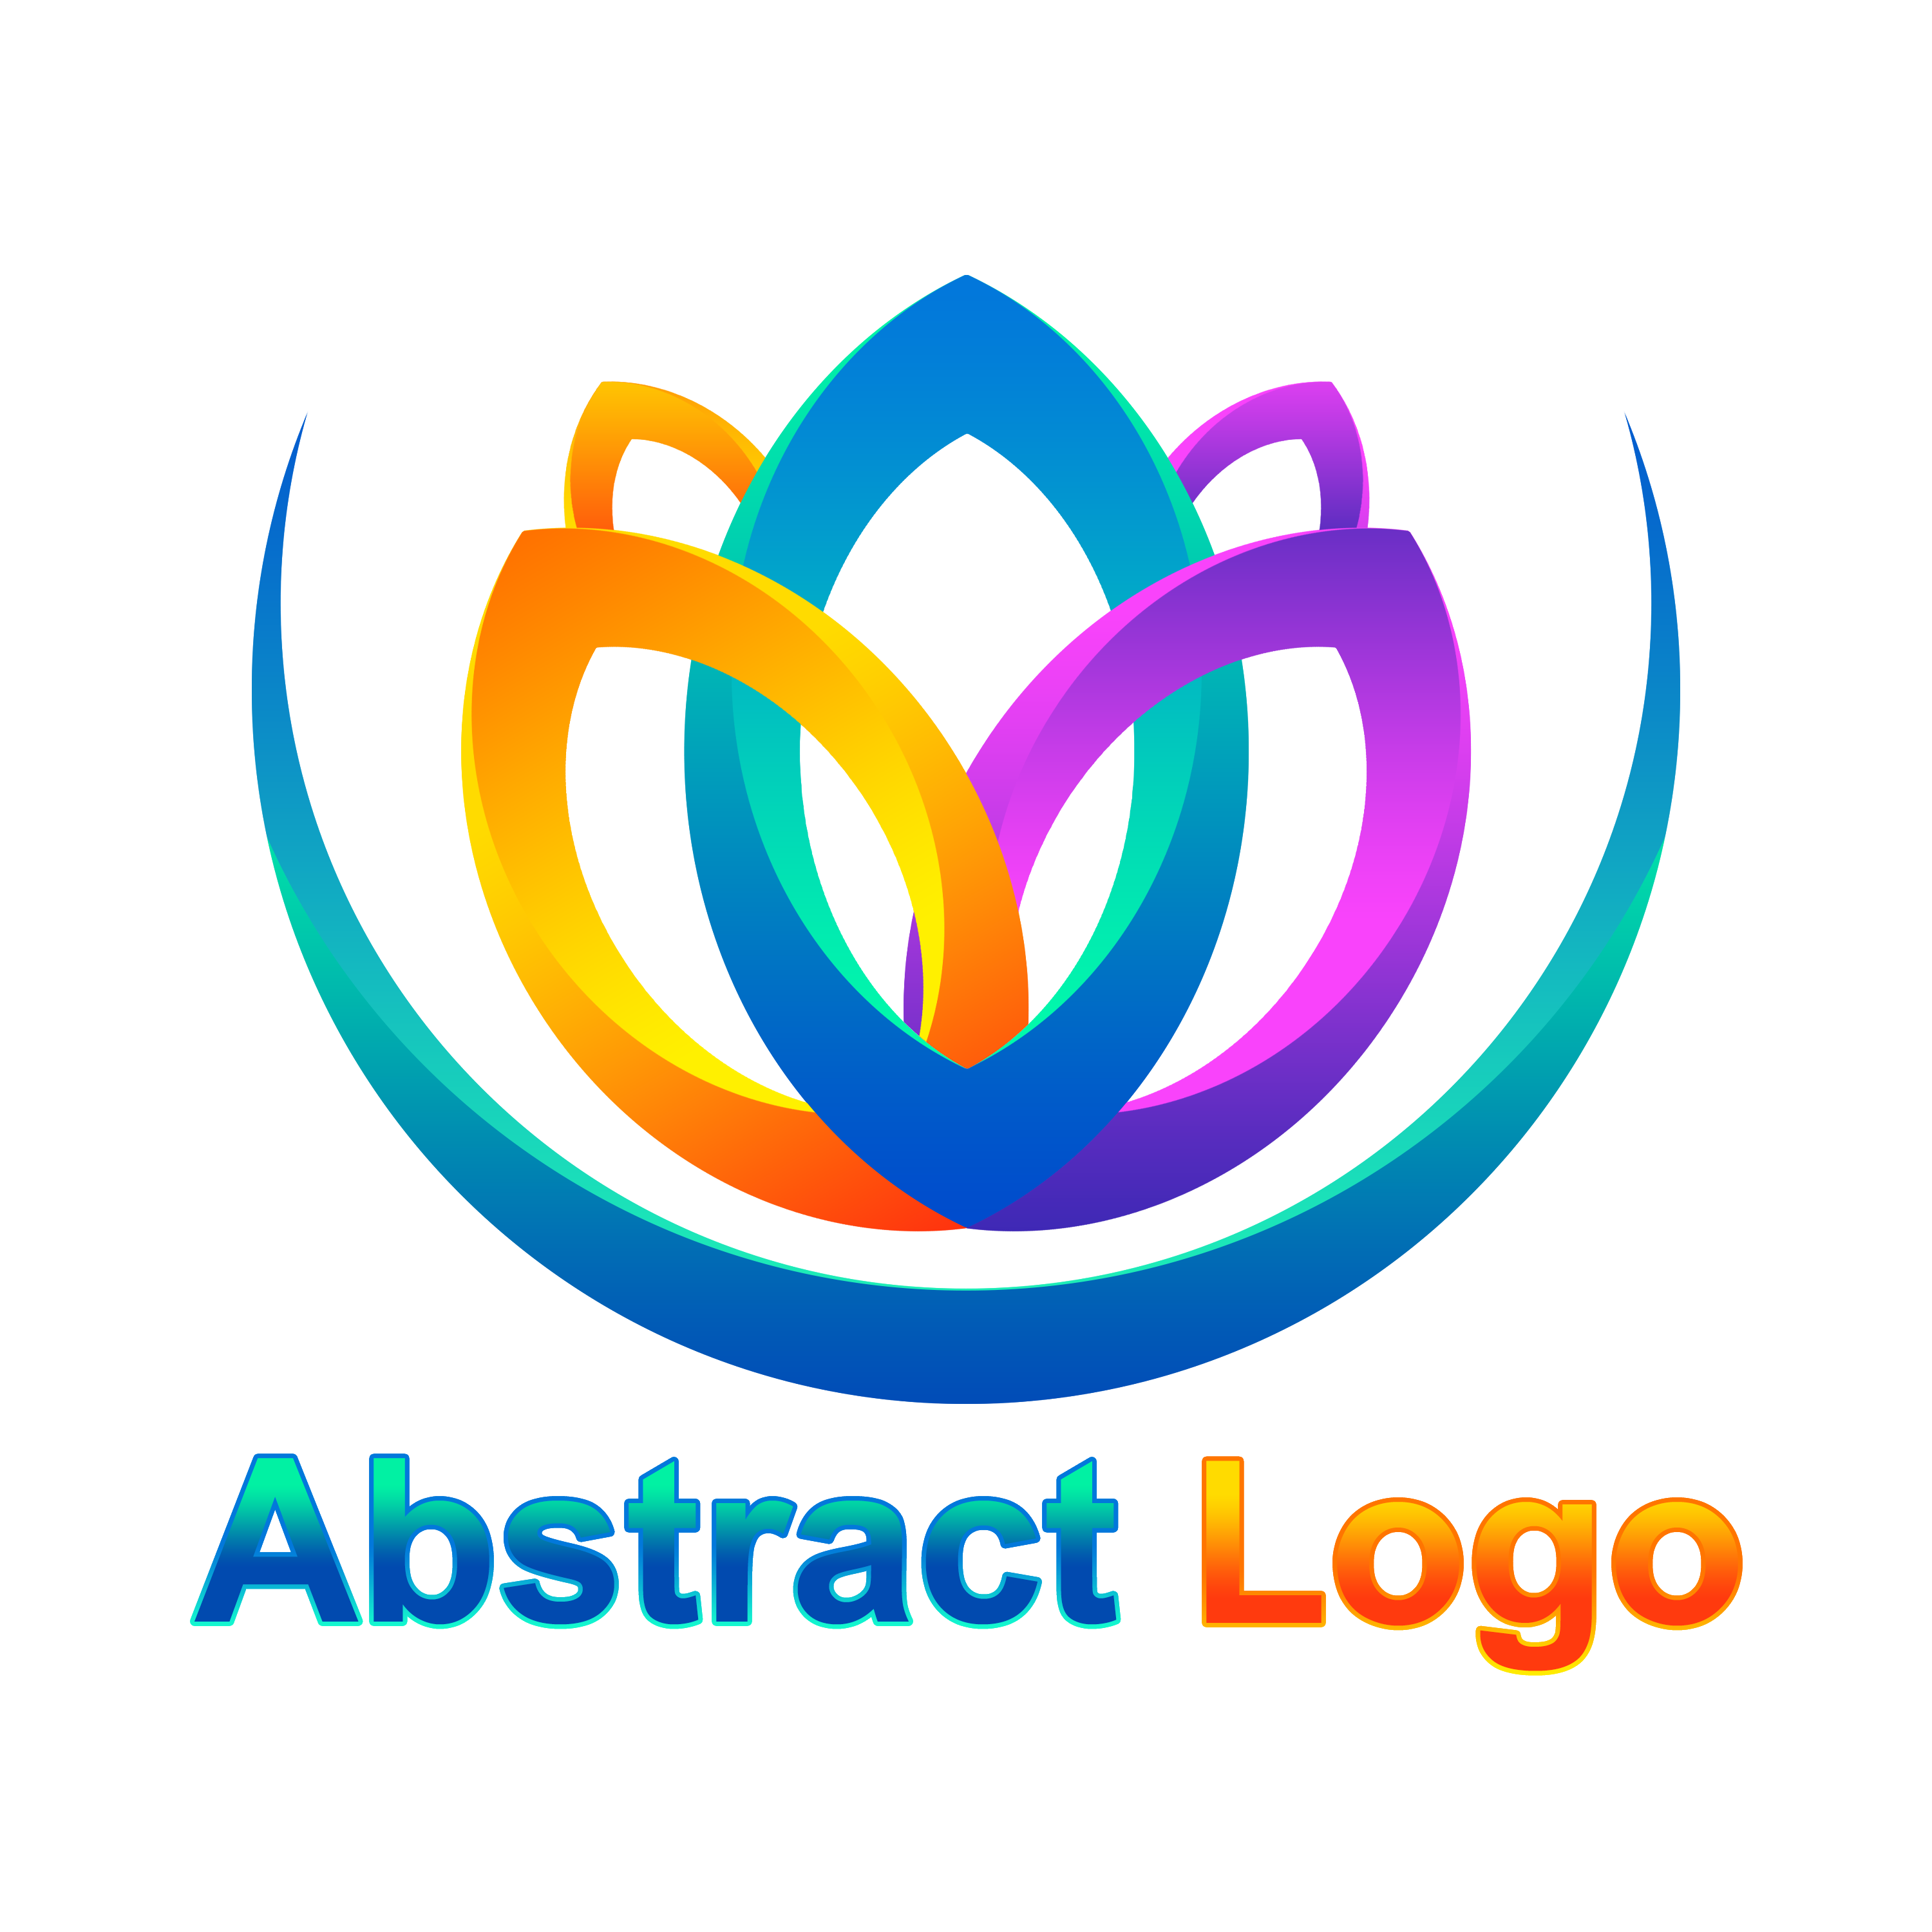 Free Editable Abstract Logo Design PNG Transparent